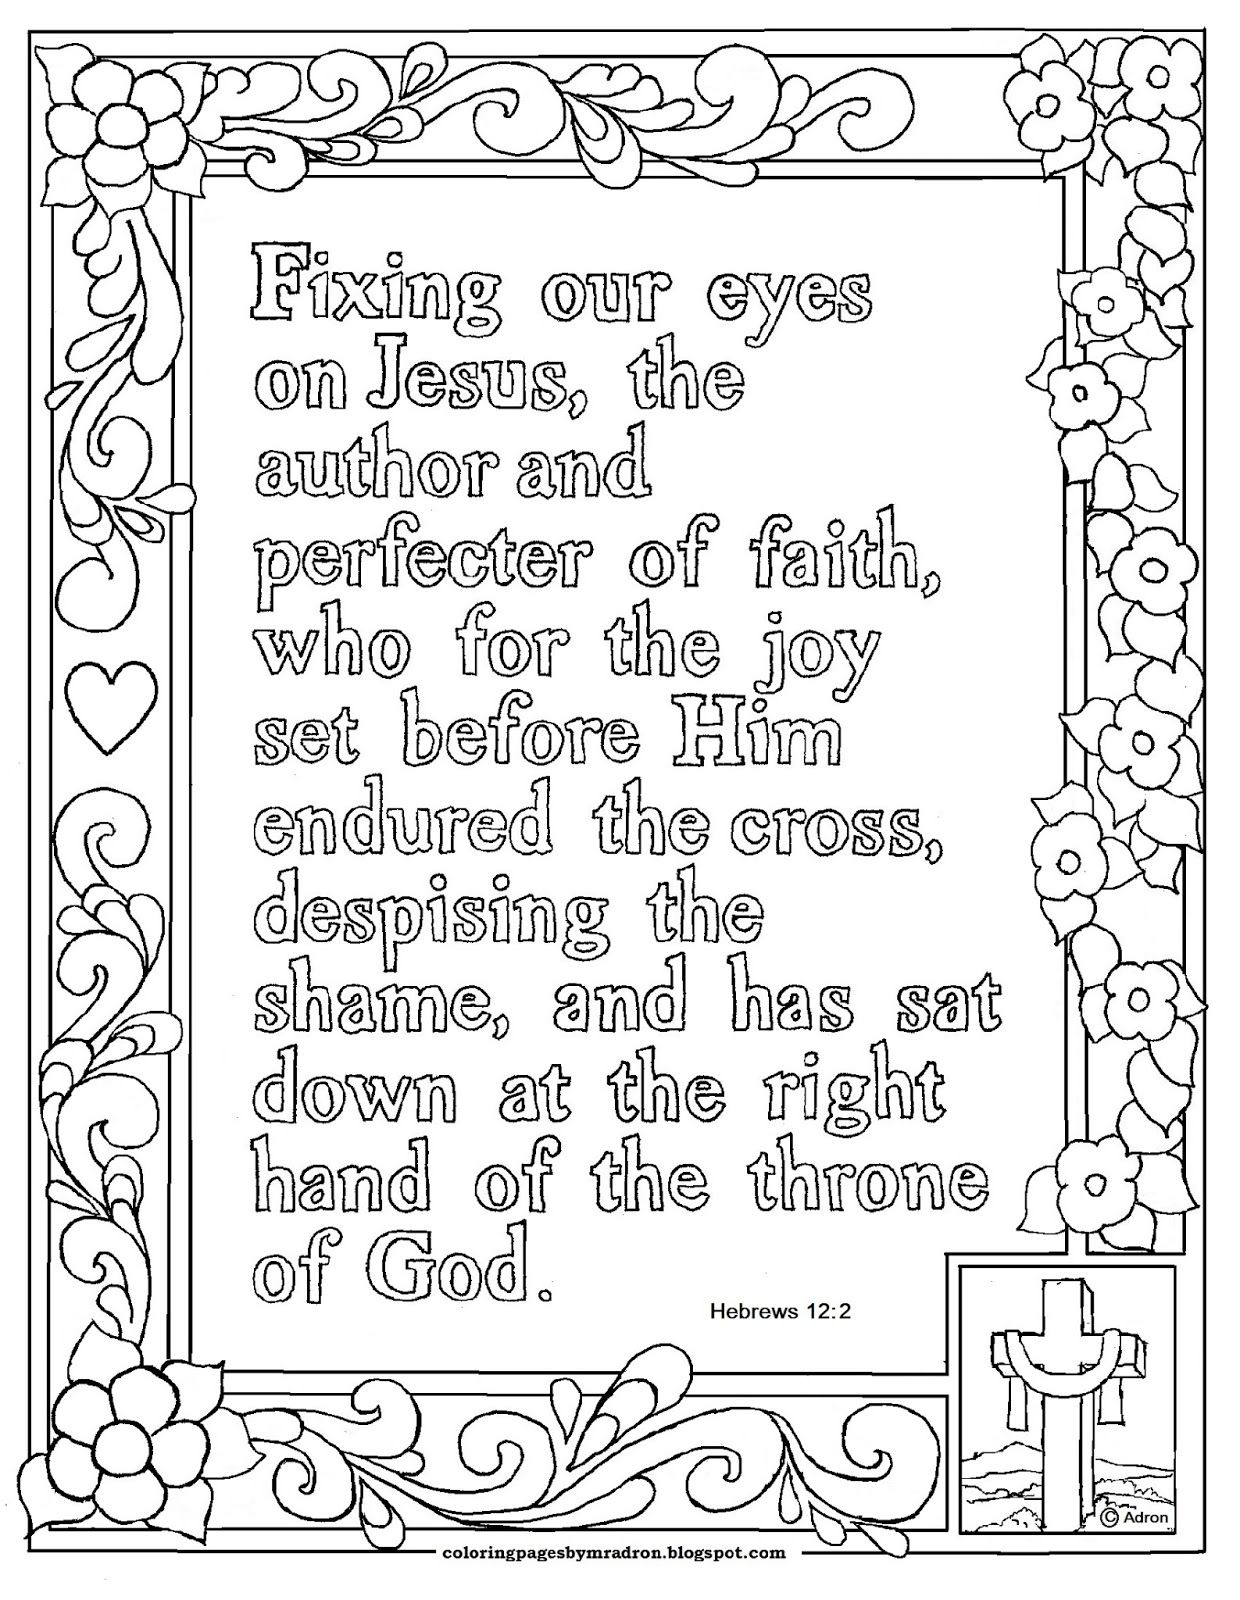 Free printable pictures to color, many are adult Bible